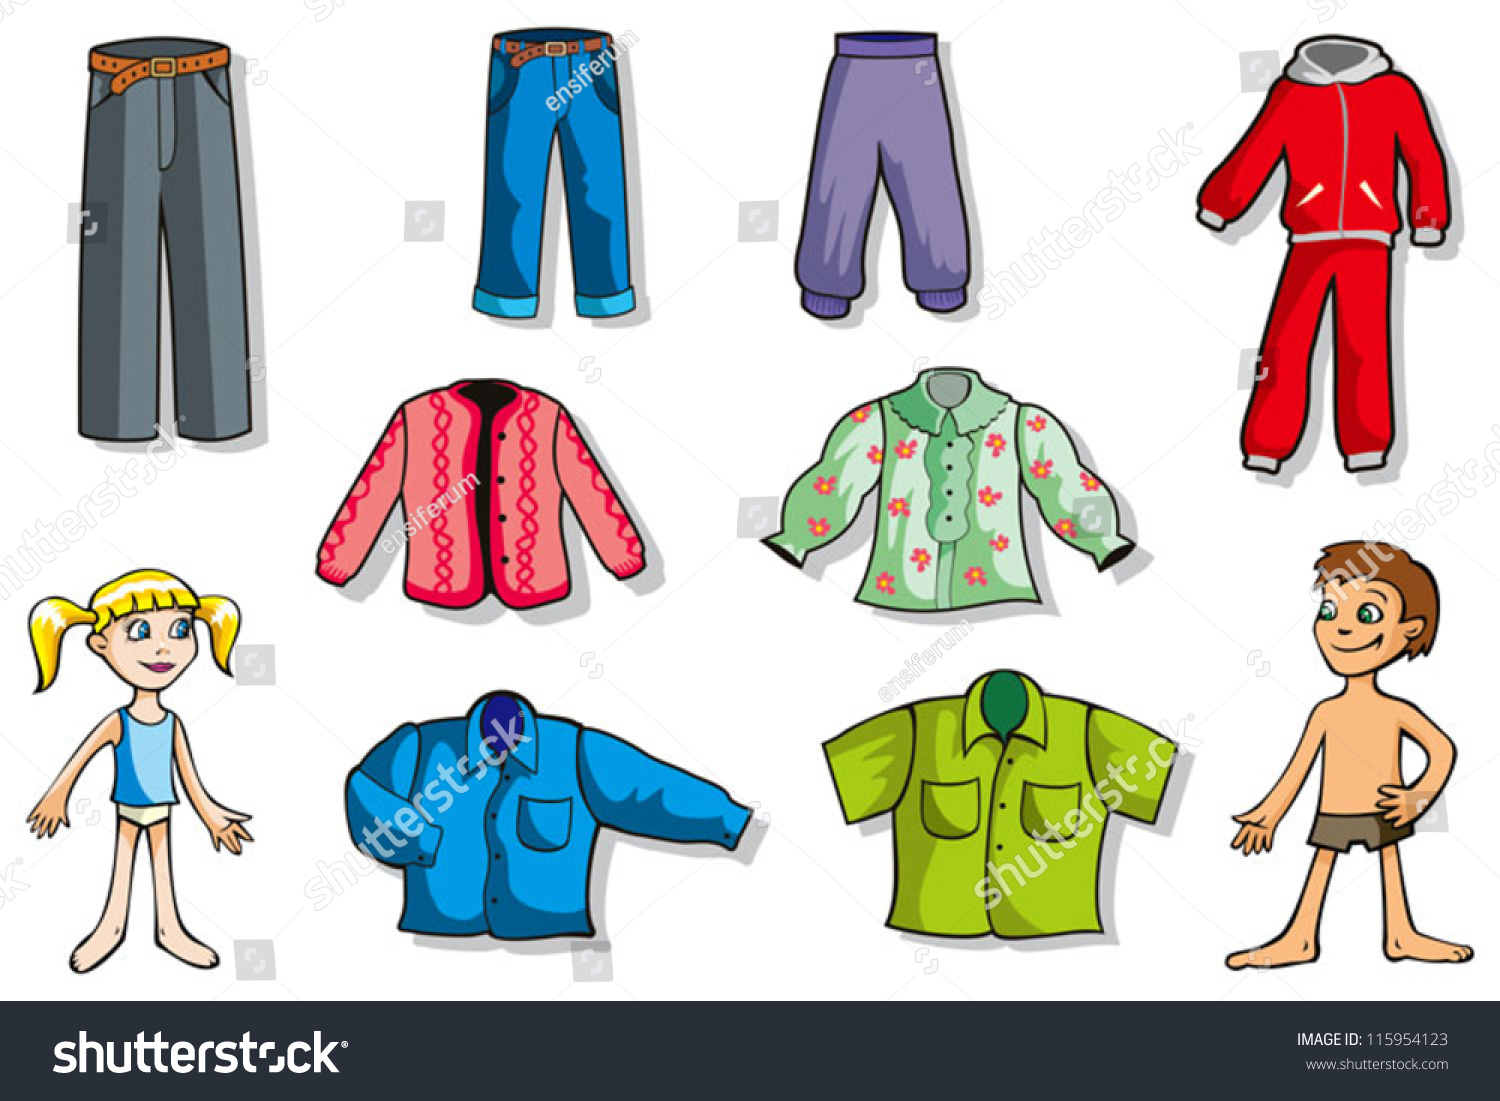 Shirt and pants clipart girls